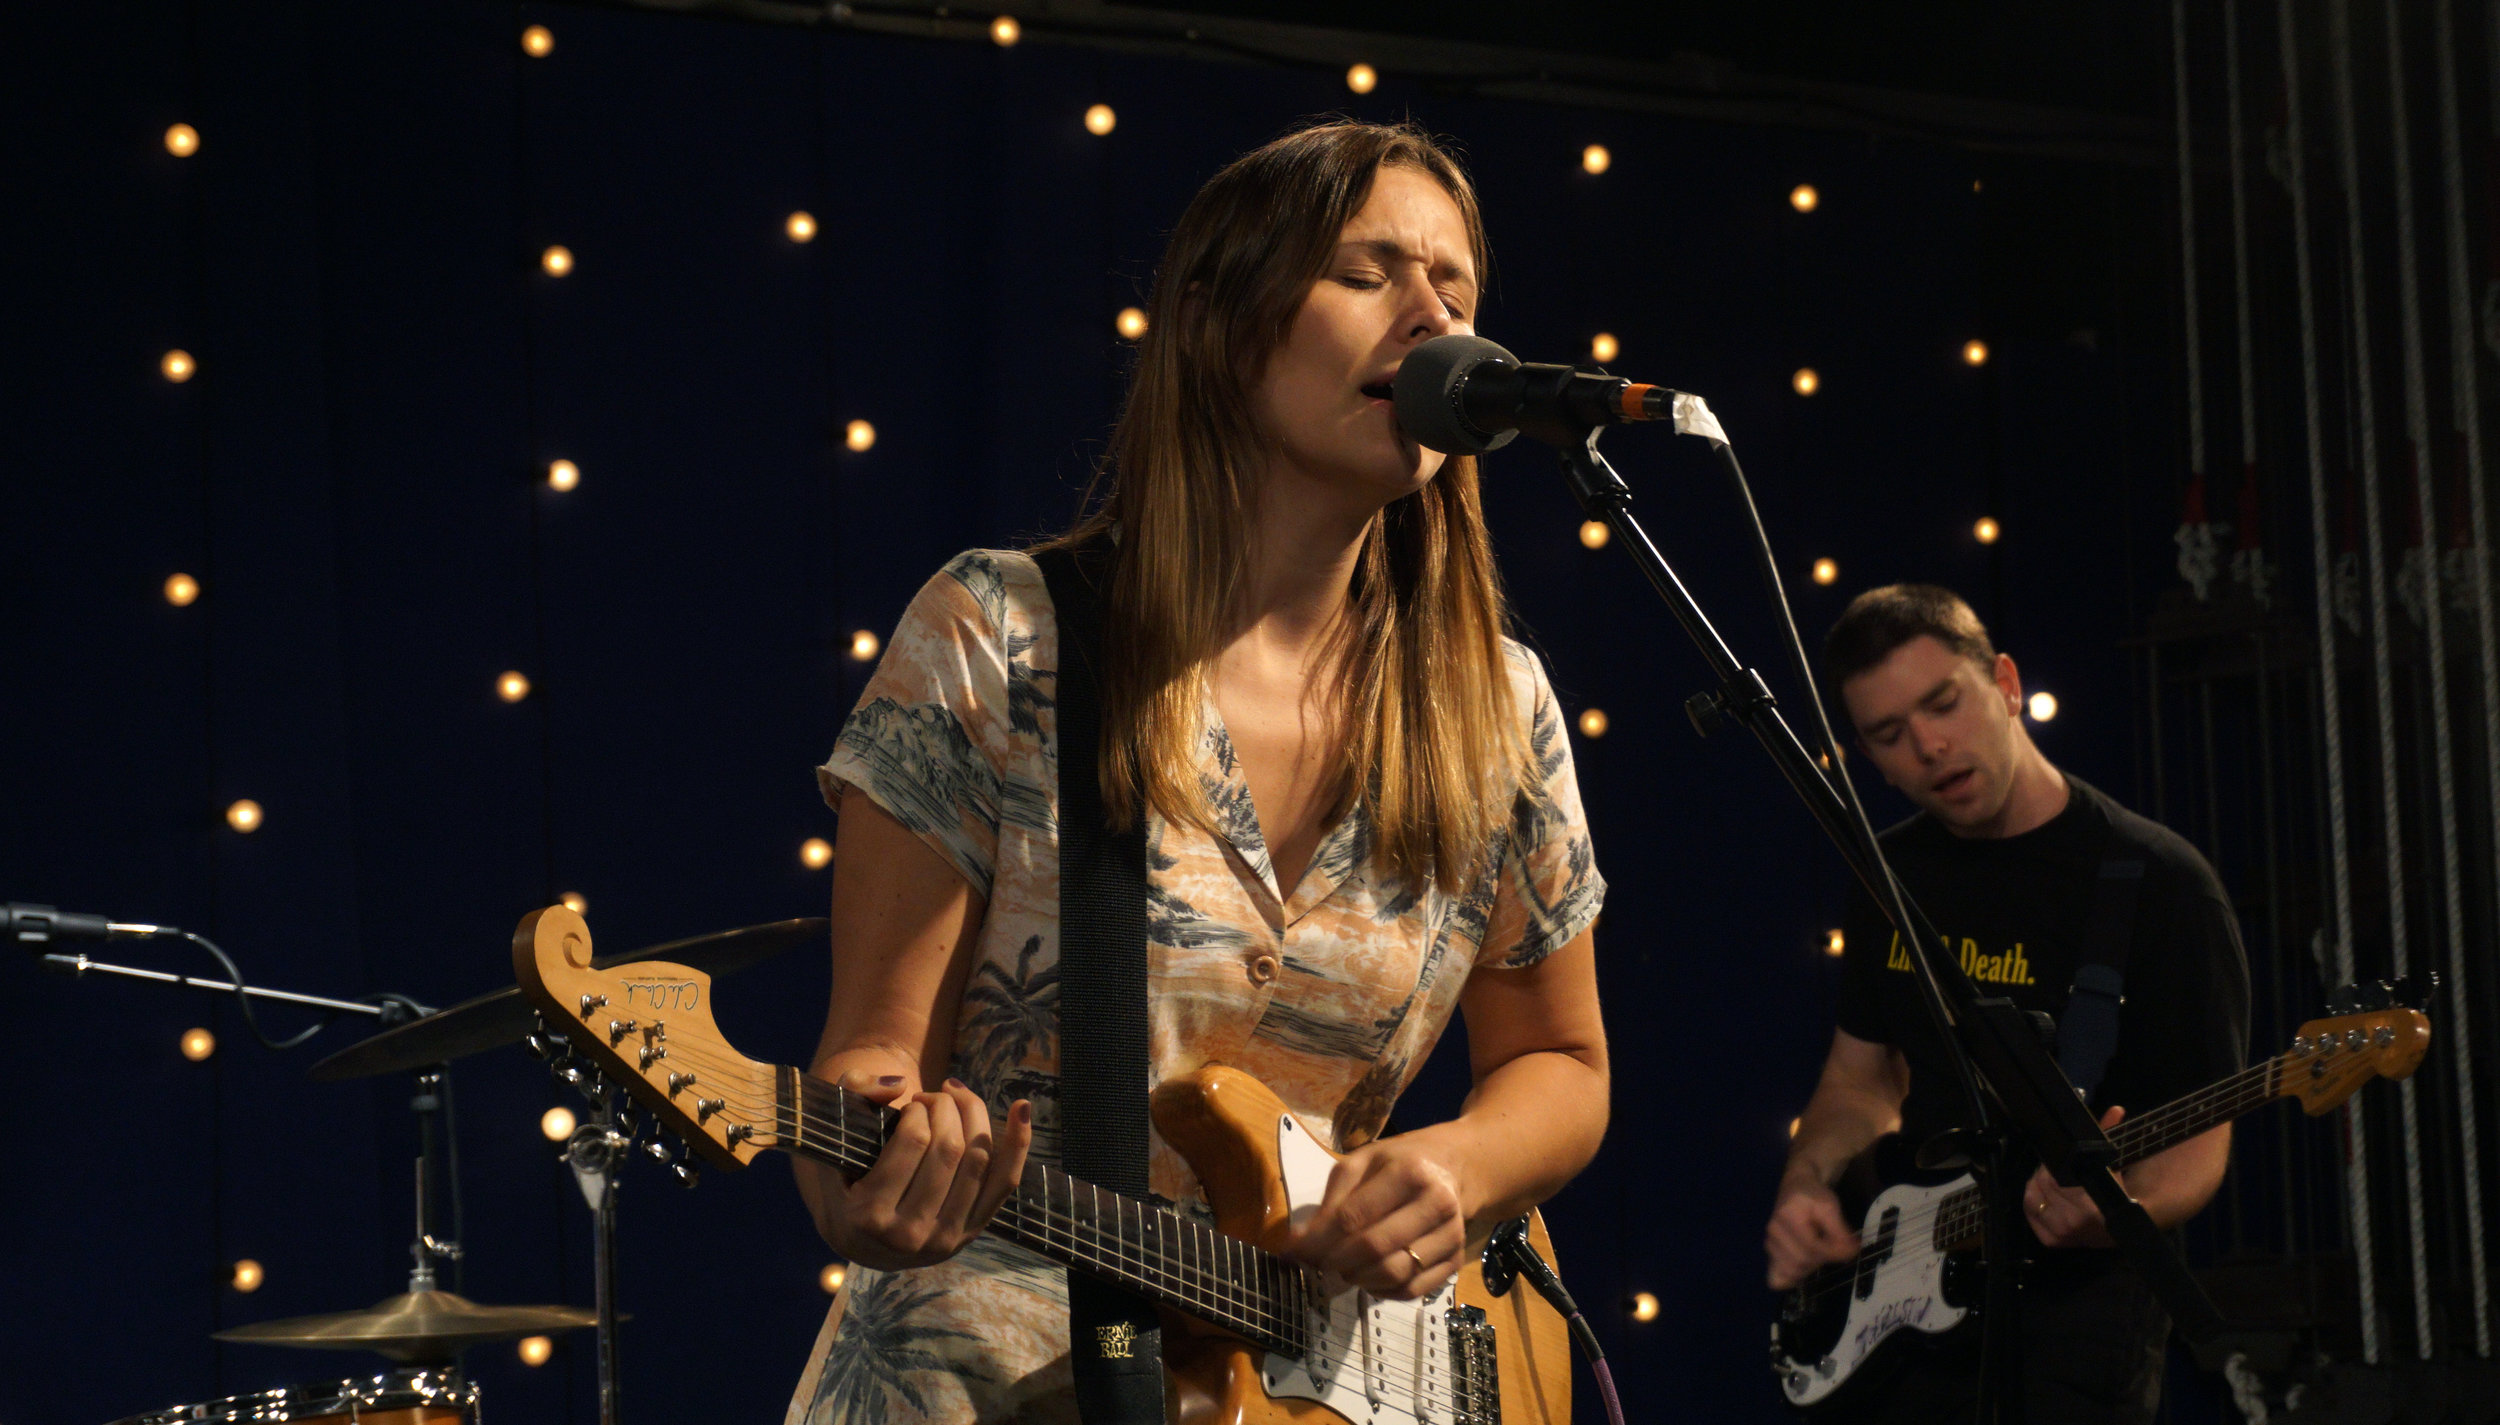 Hannah Joy of Sydney, Australia-based indie trio Middle Kids performs during a 909 Session at The Bridge radio station on June 11, 2018.